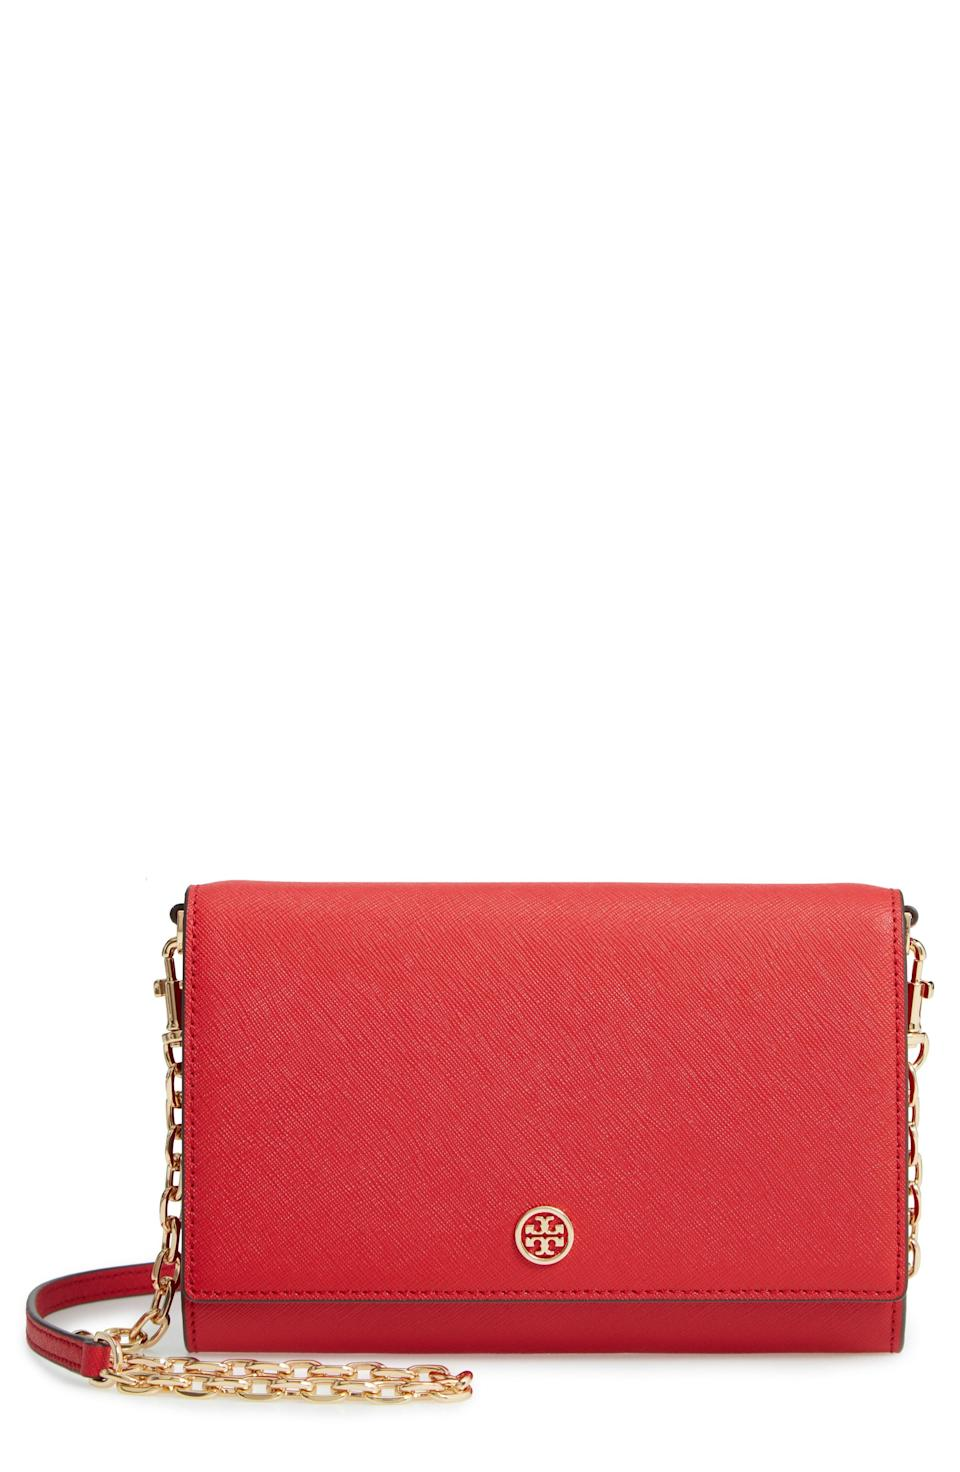 """<p><strong>TORY BURCH</strong></p><p>nordstrom.com</p><p><strong>$298.00</strong></p><p><a href=""""https://go.redirectingat.com?id=74968X1596630&url=https%3A%2F%2Fshop.nordstrom.com%2Fs%2Ftory-burch-robinson-leather-wallet-on-a-chain%2F4853135&sref=https%3A%2F%2Fwww.townandcountrymag.com%2Fleisure%2Fg26946158%2Fbest-nanny-gifts%2F"""" rel=""""nofollow noopener"""" target=""""_blank"""" data-ylk=""""slk:Shop Now"""" class=""""link rapid-noclick-resp"""">Shop Now</a></p><p>A classic petite purse is a wardrobe essential for everything from cocktail parties and vacation looks to weekend errands. This red one from Tory Burch is both sturdy and timeless, ensuring she'll be able to enjoy it for years to come. </p>"""